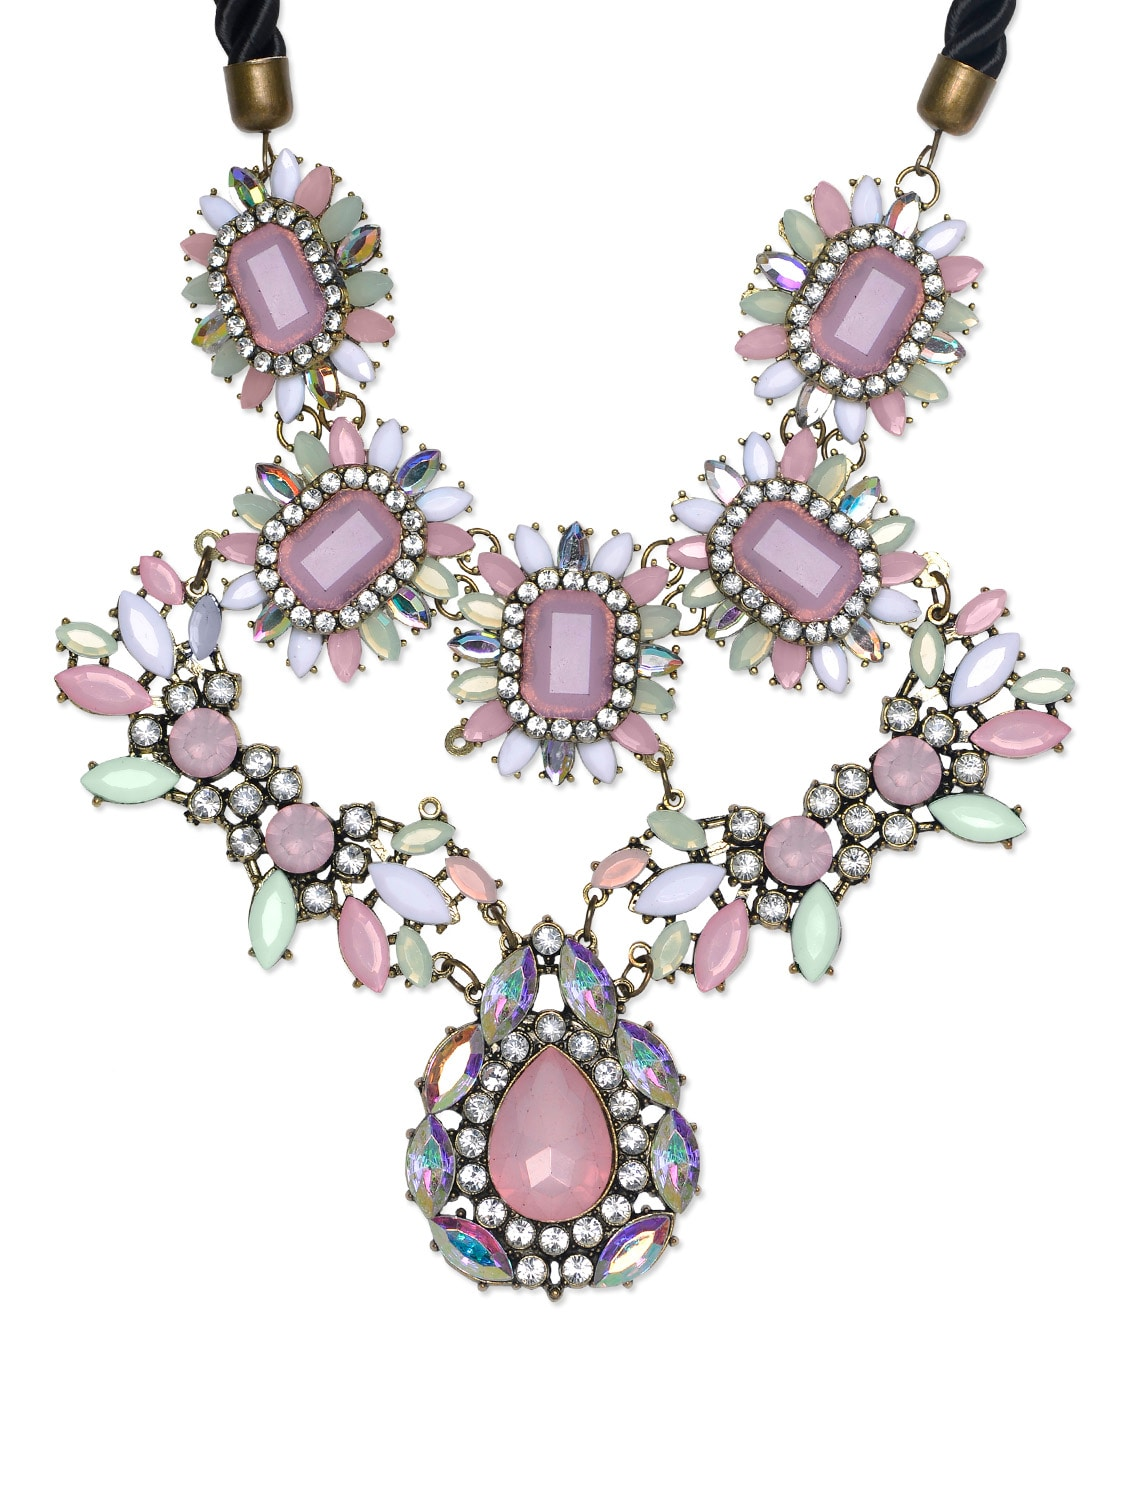 Artistic Necklace In Pink-White - STREET 9